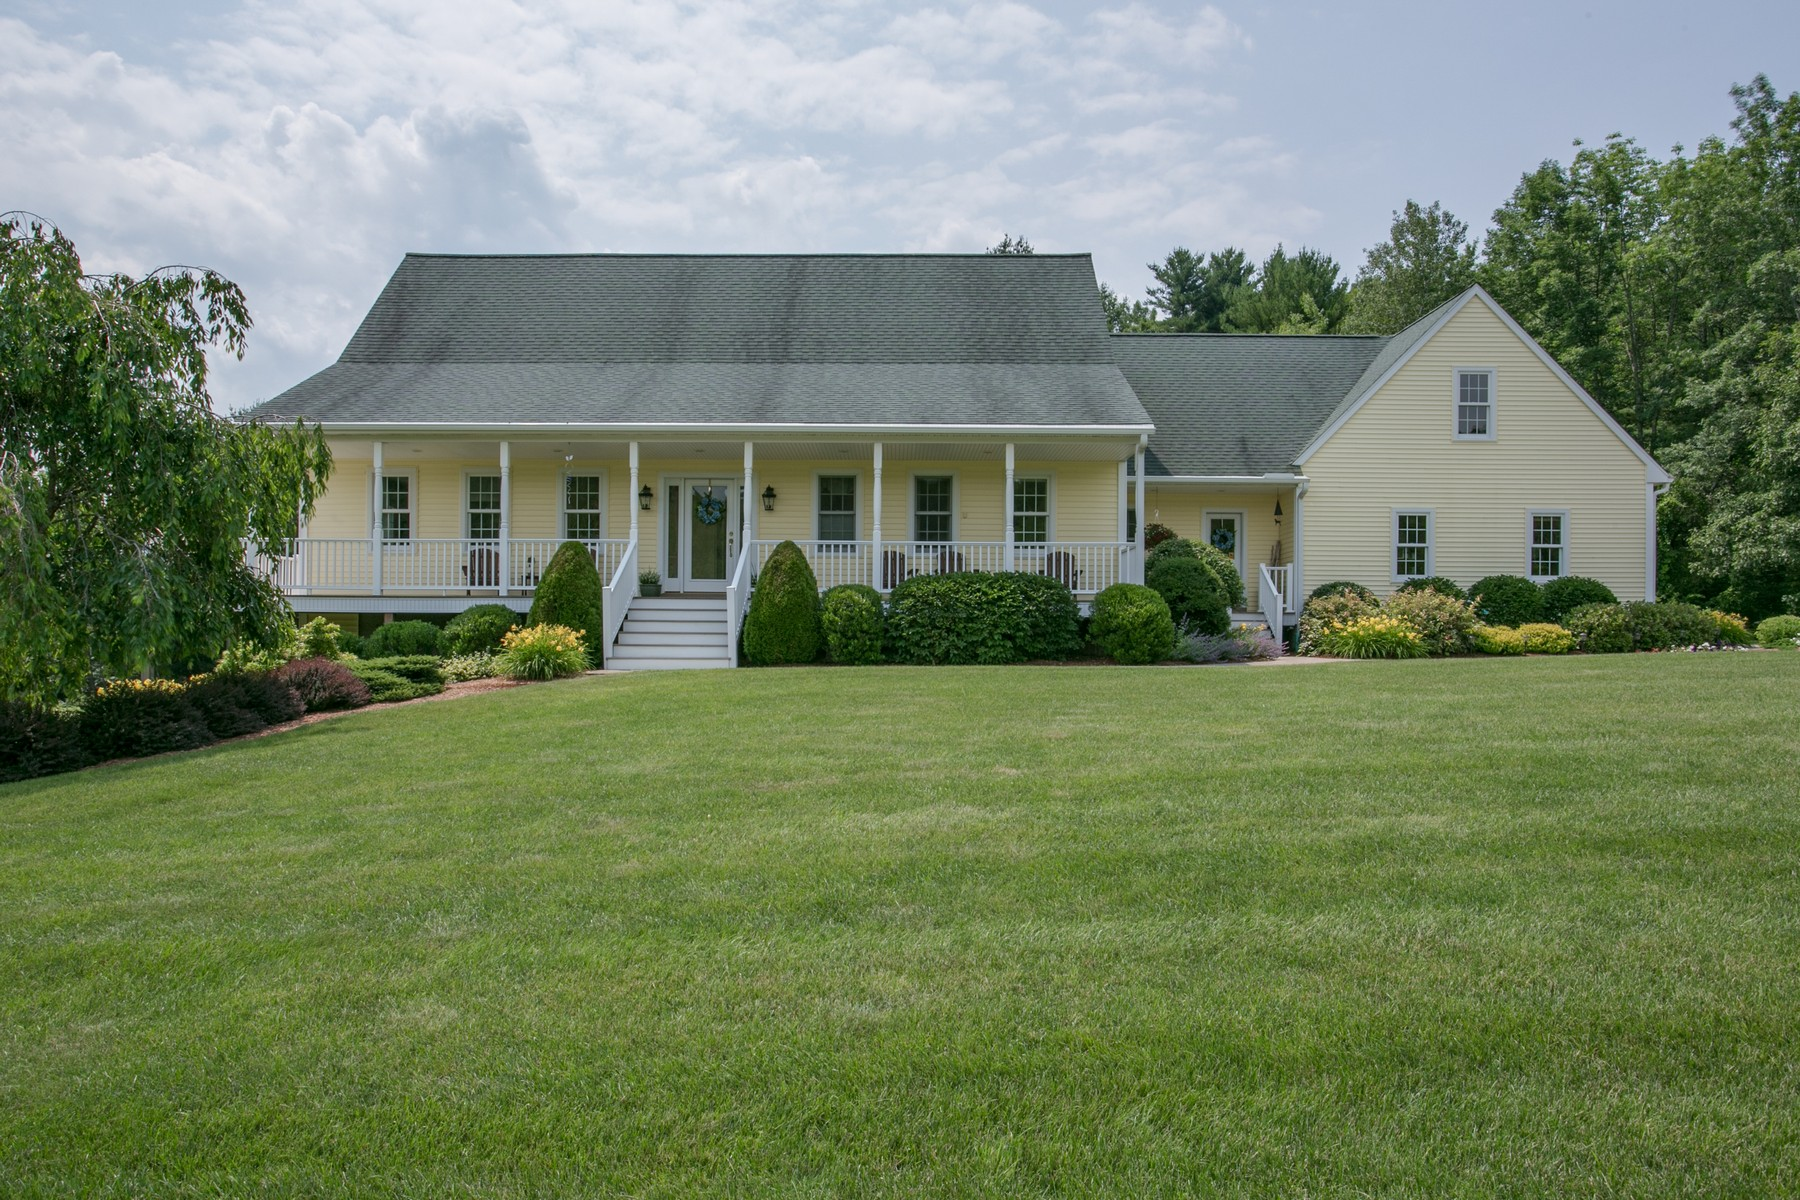 Single Family Home for Sale at Beautiful Cape Atop A Sloping Hill 17 Bigelow Road North Brookfield, 01535 United States